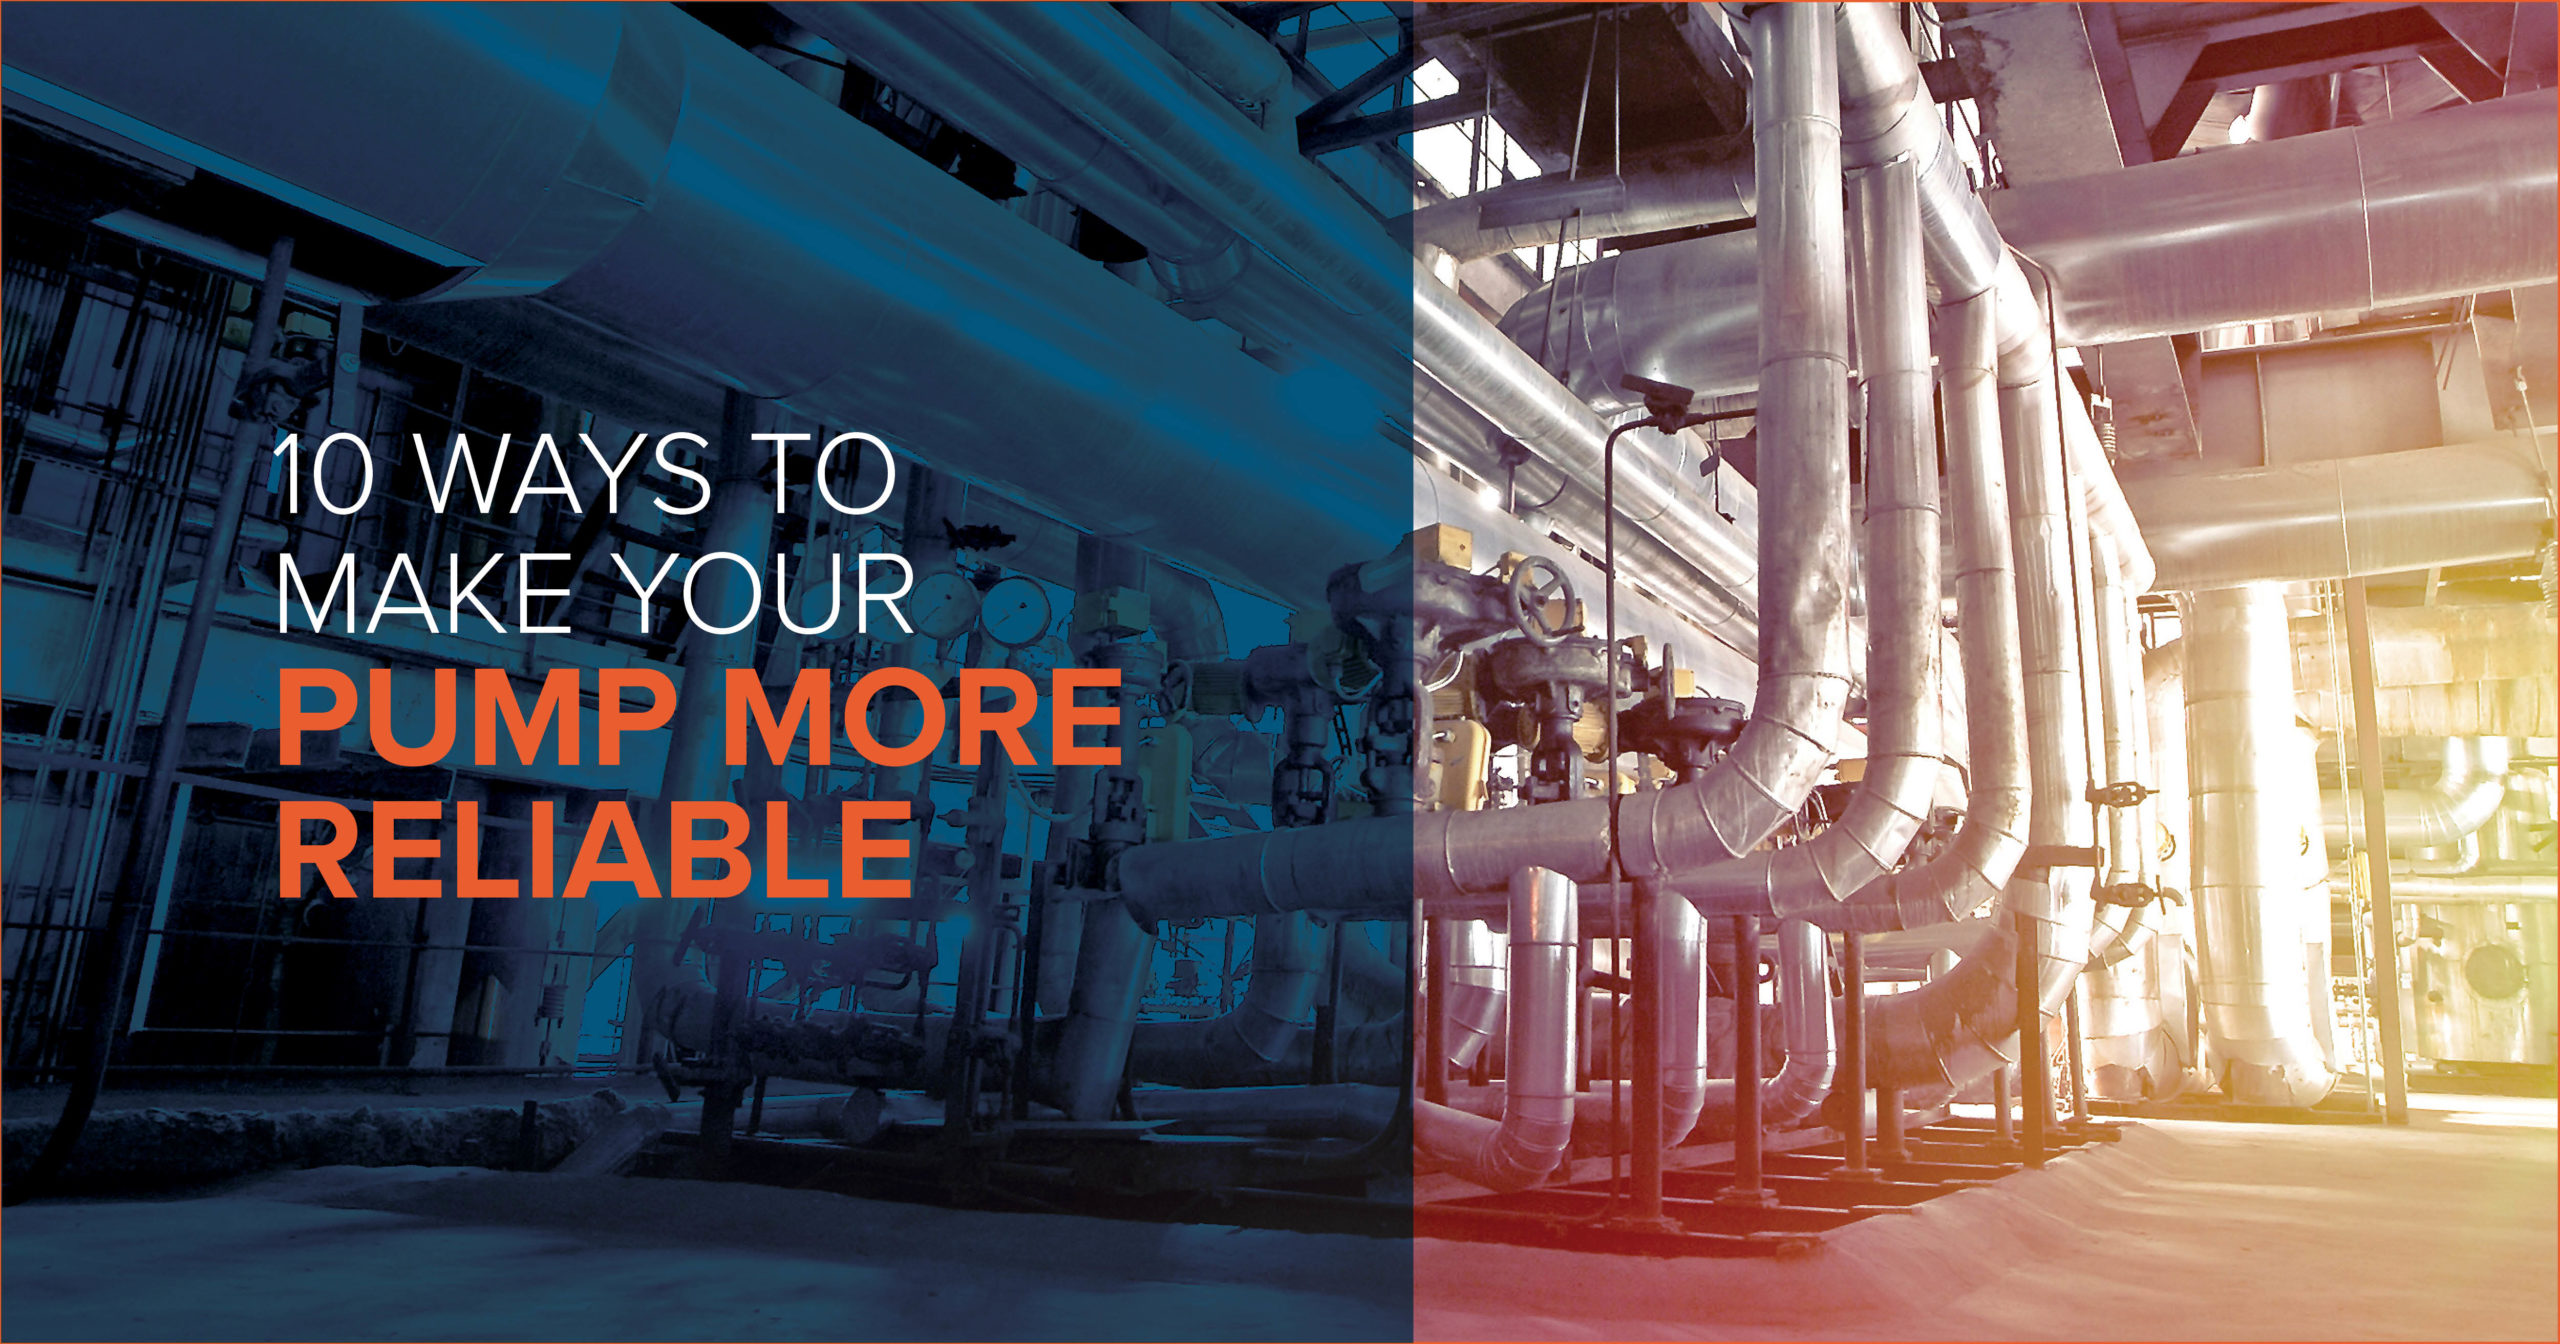 10 Ways to Make Your Pump More Reliable